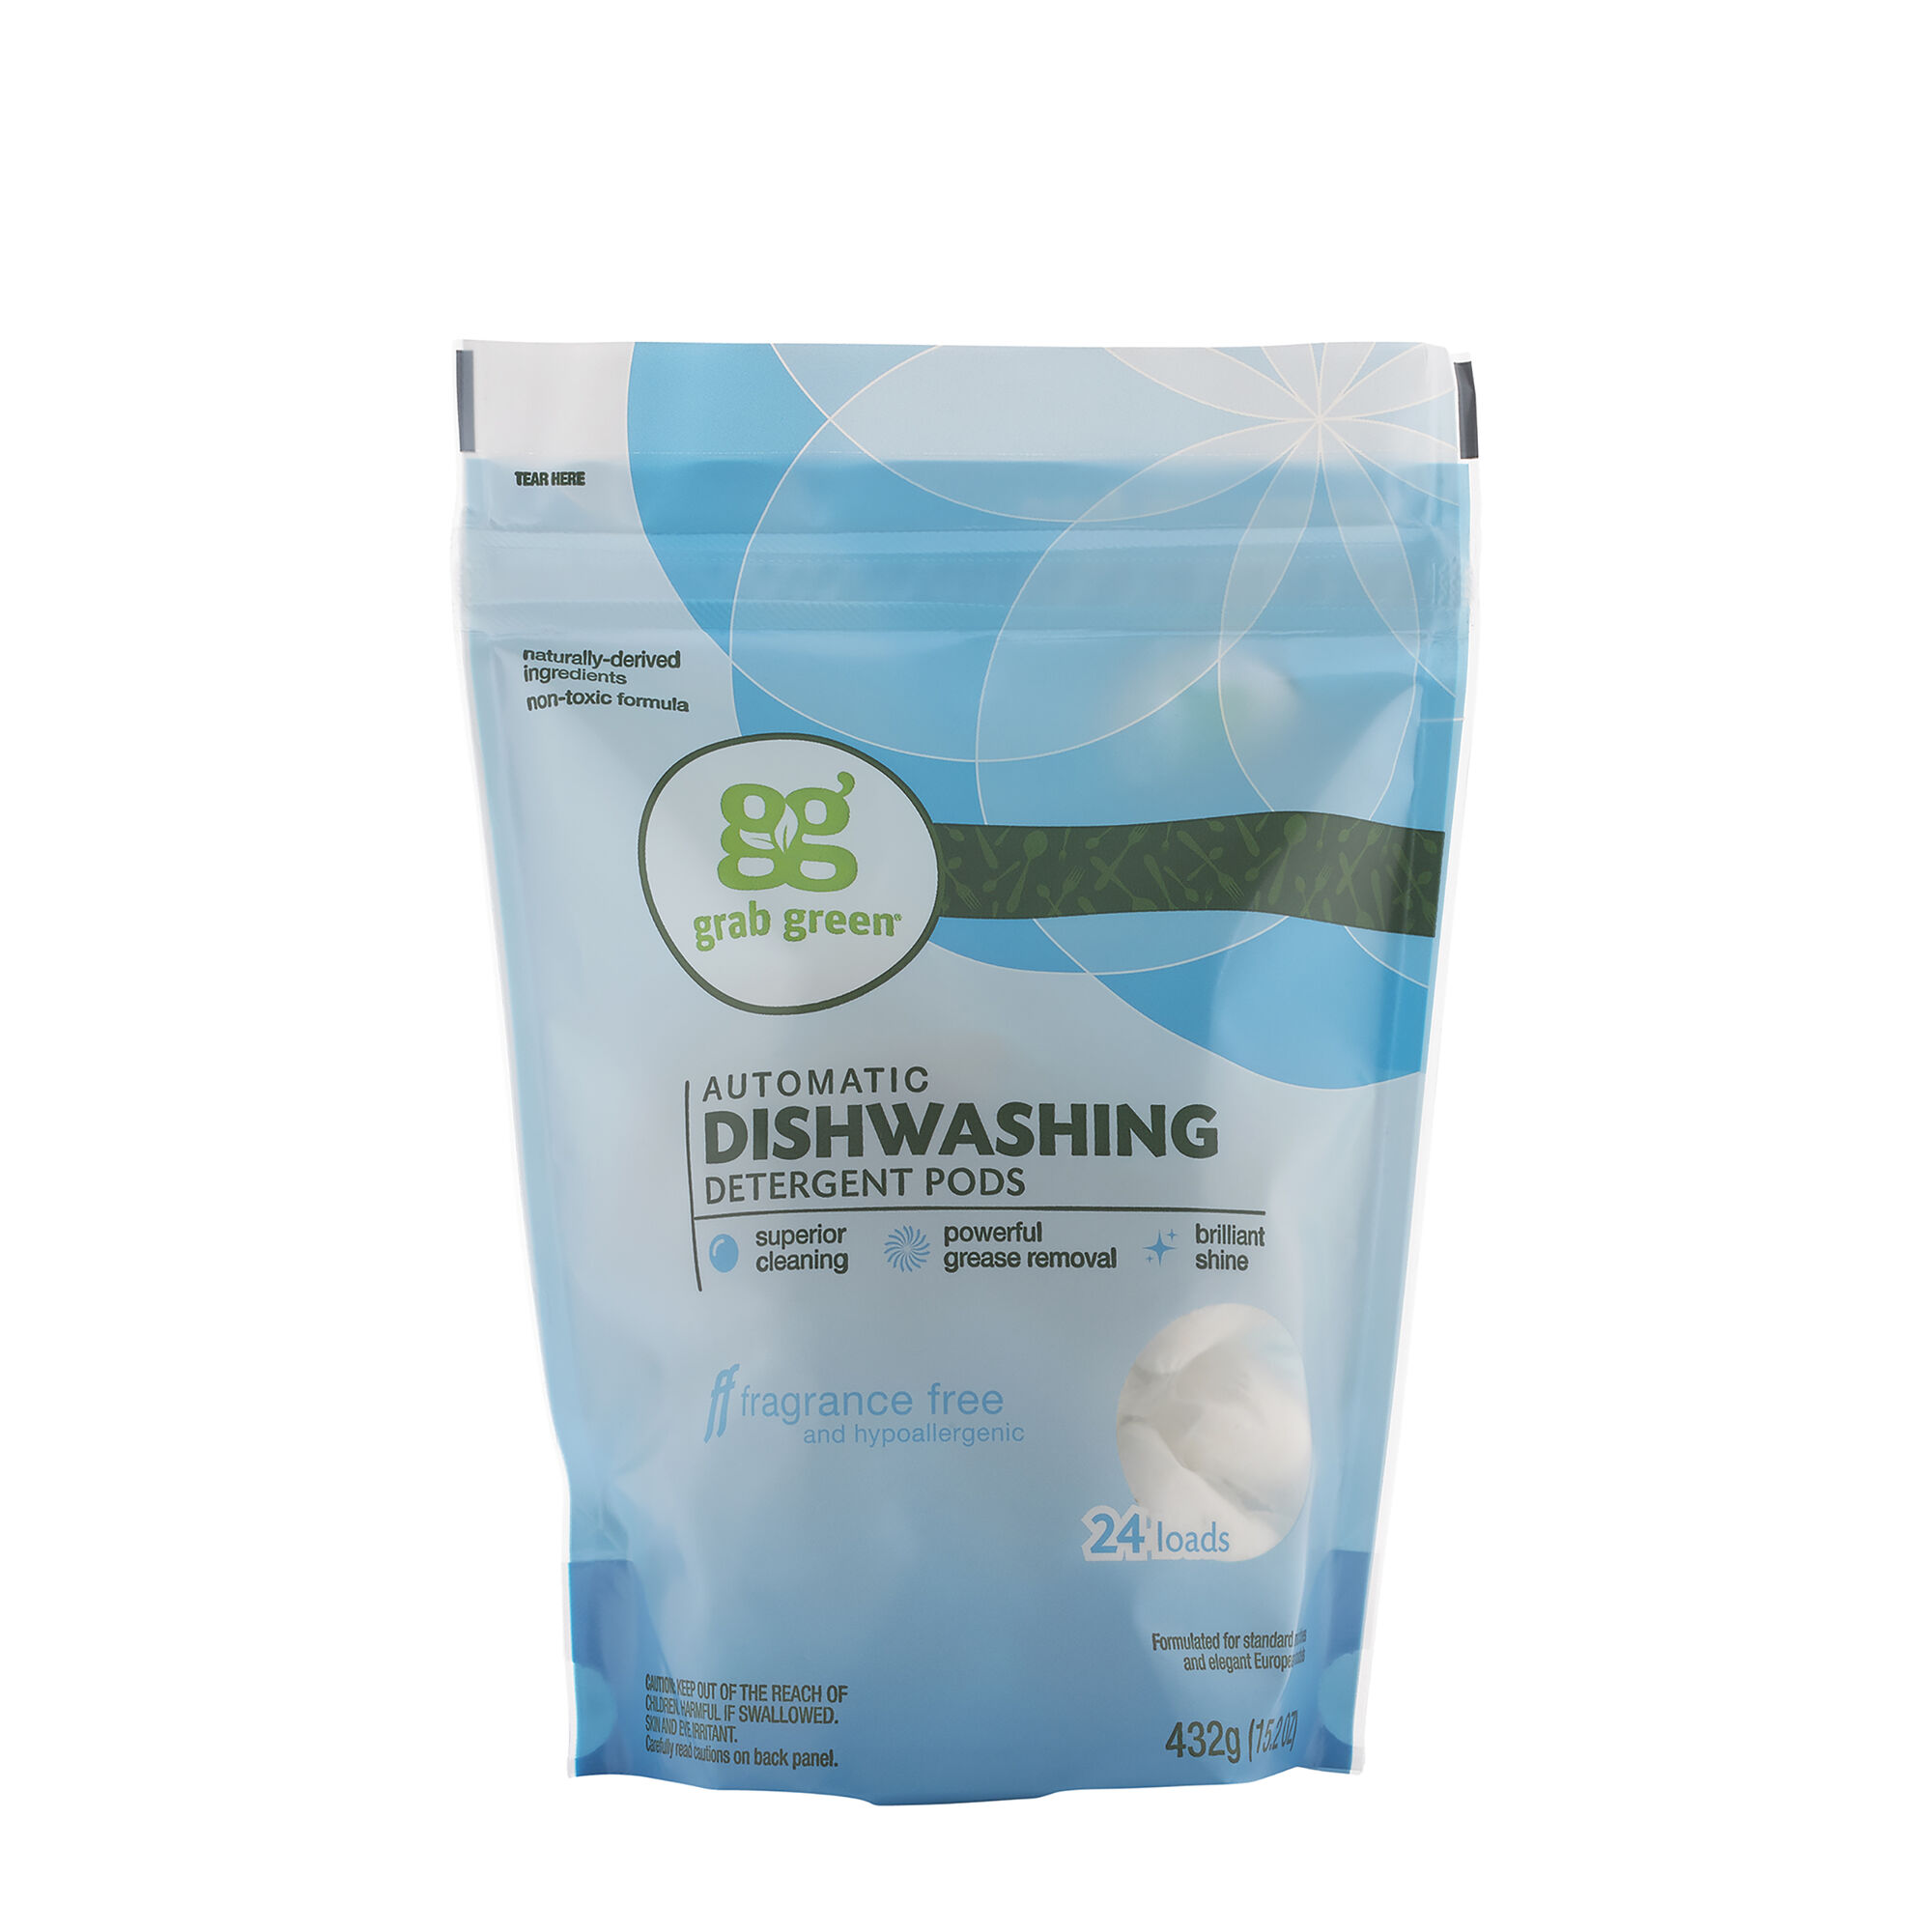 Automatic Dishwashing Detergent Pods Fragrance Free 24 Loads Grab GreenNatural Cleaning Products